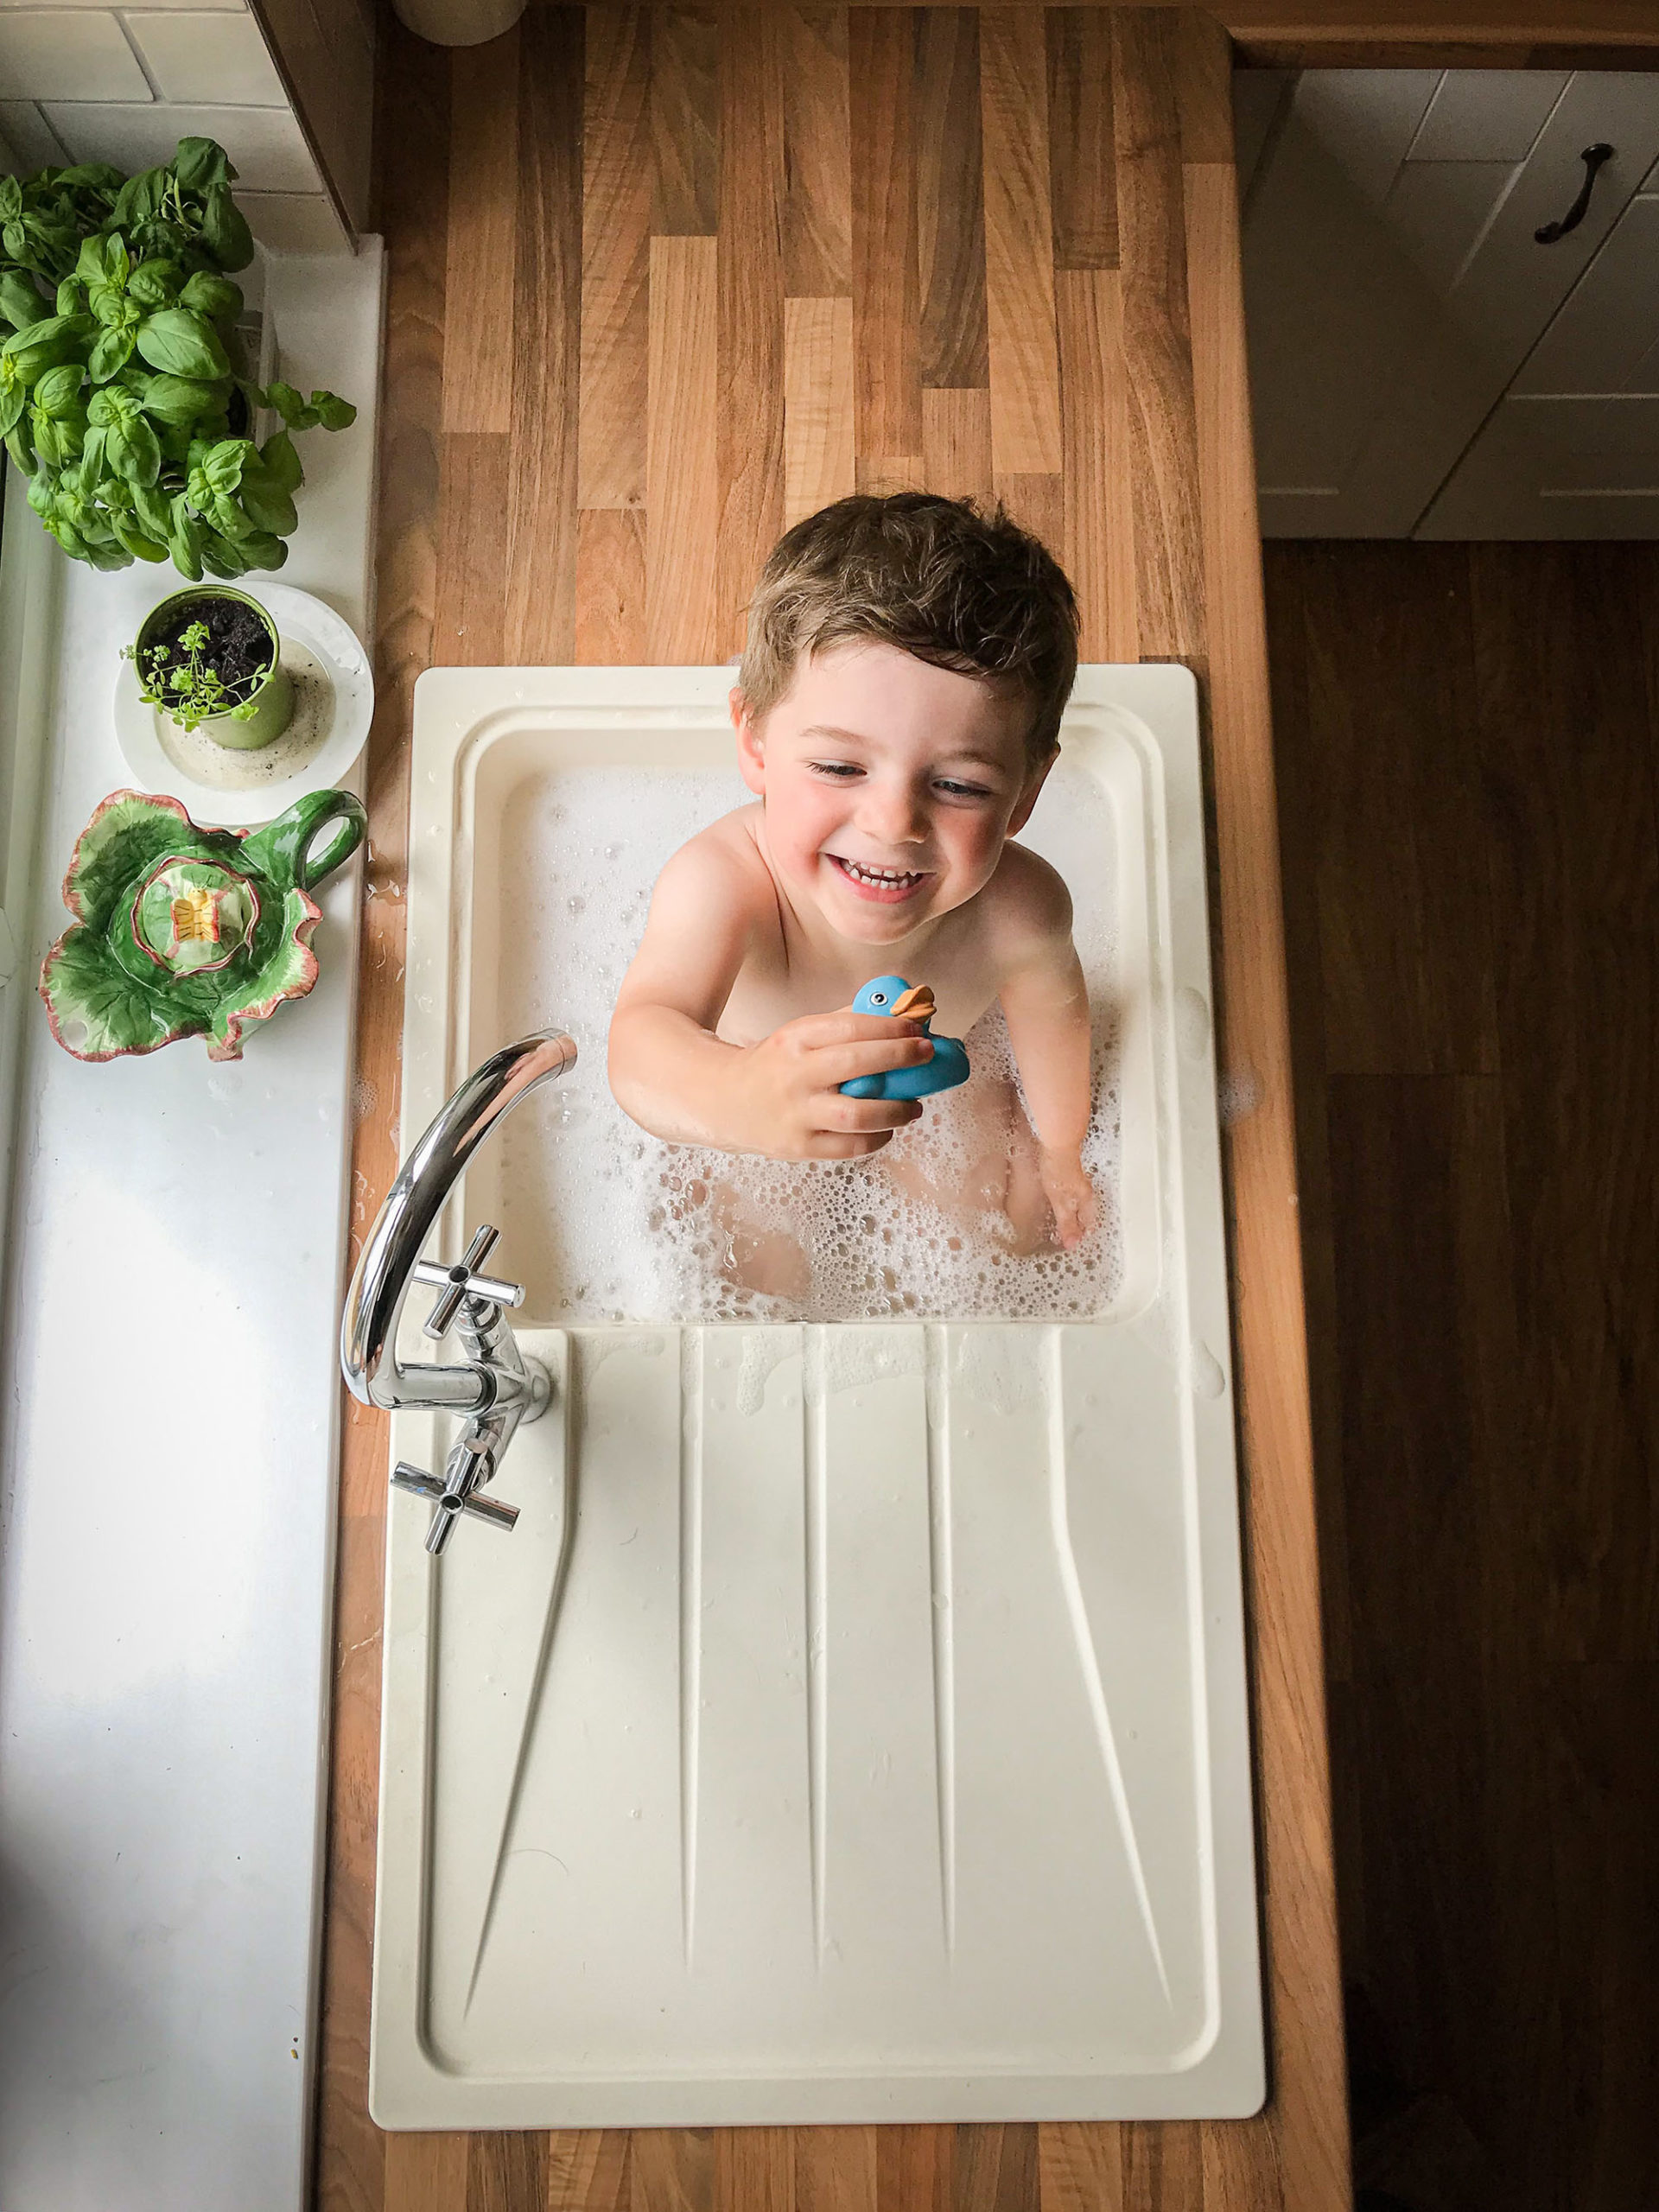 taking professional photos with your phone, sink bath